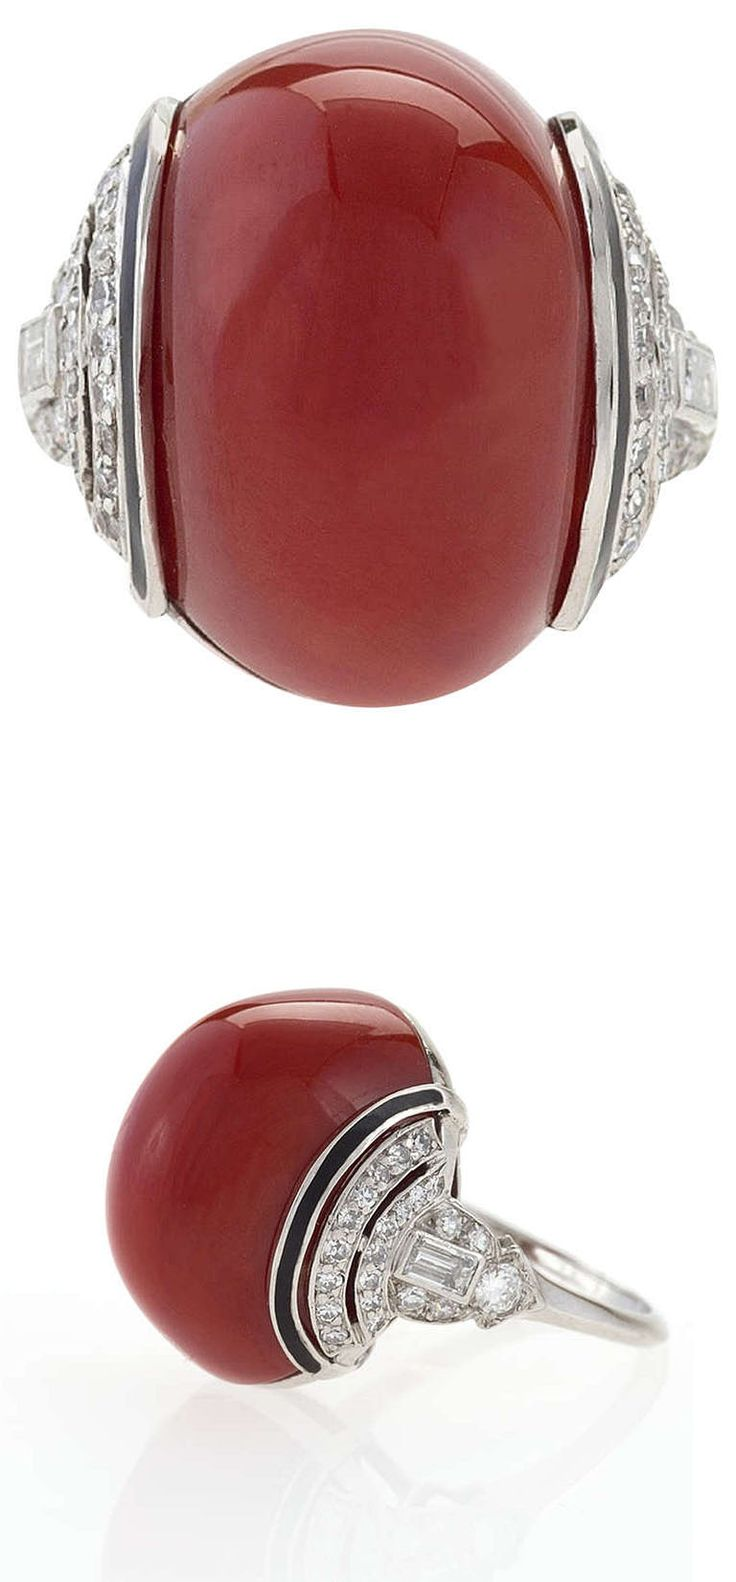 Red coral painting popular red coral print buy cheap red coral print - Art Deco Diamond Red Coral Enamel And Platinum Ring